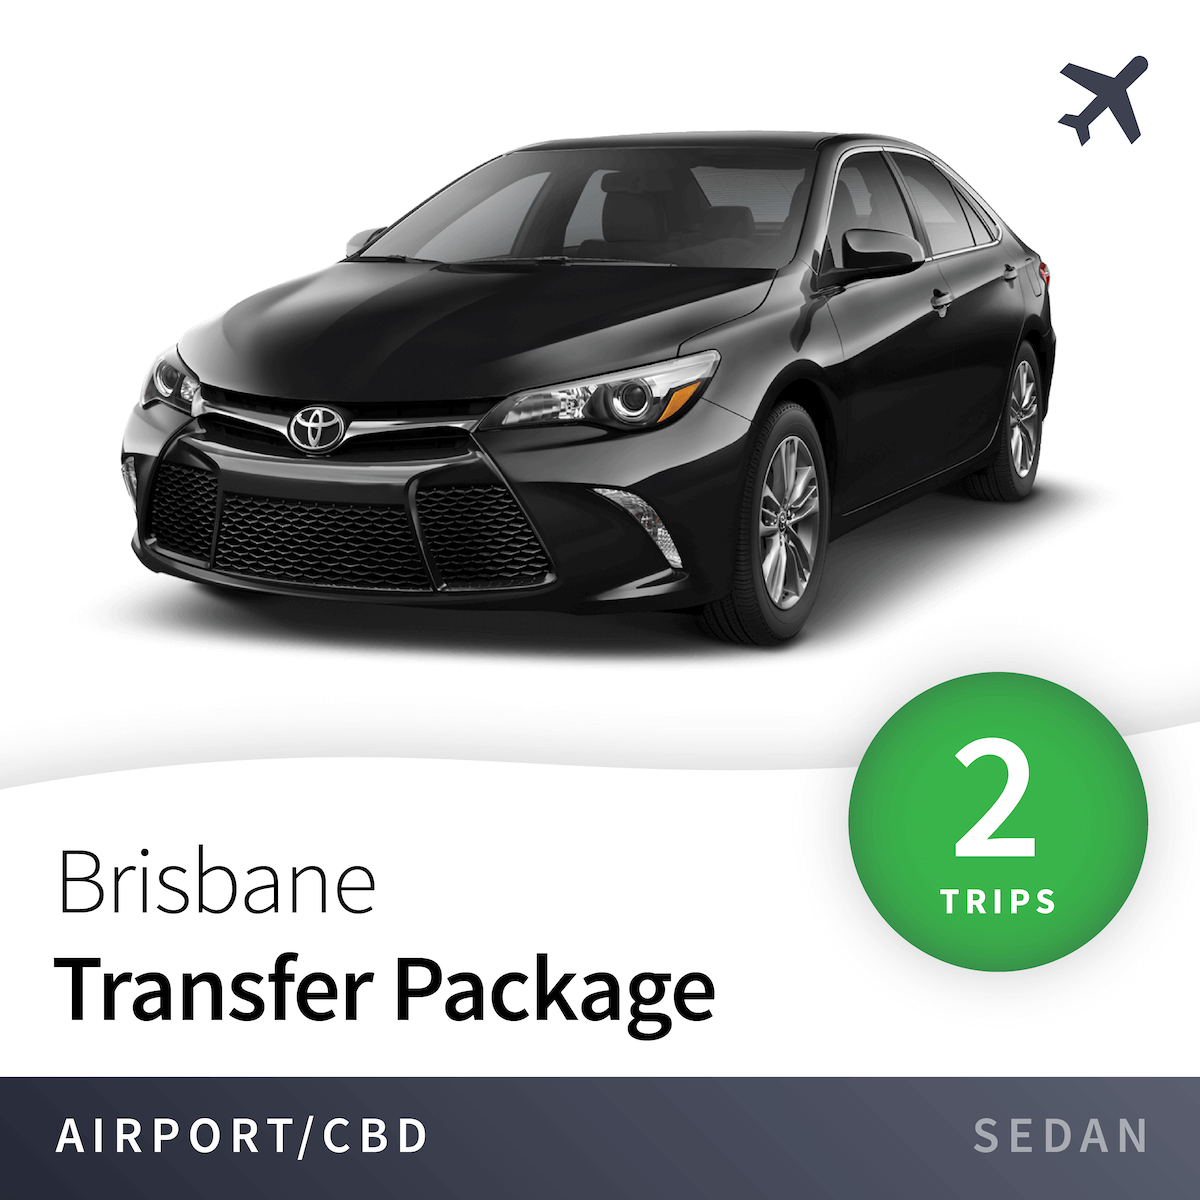 Brisbane Airport Transfer Package - Sedan (2 Trips) 3